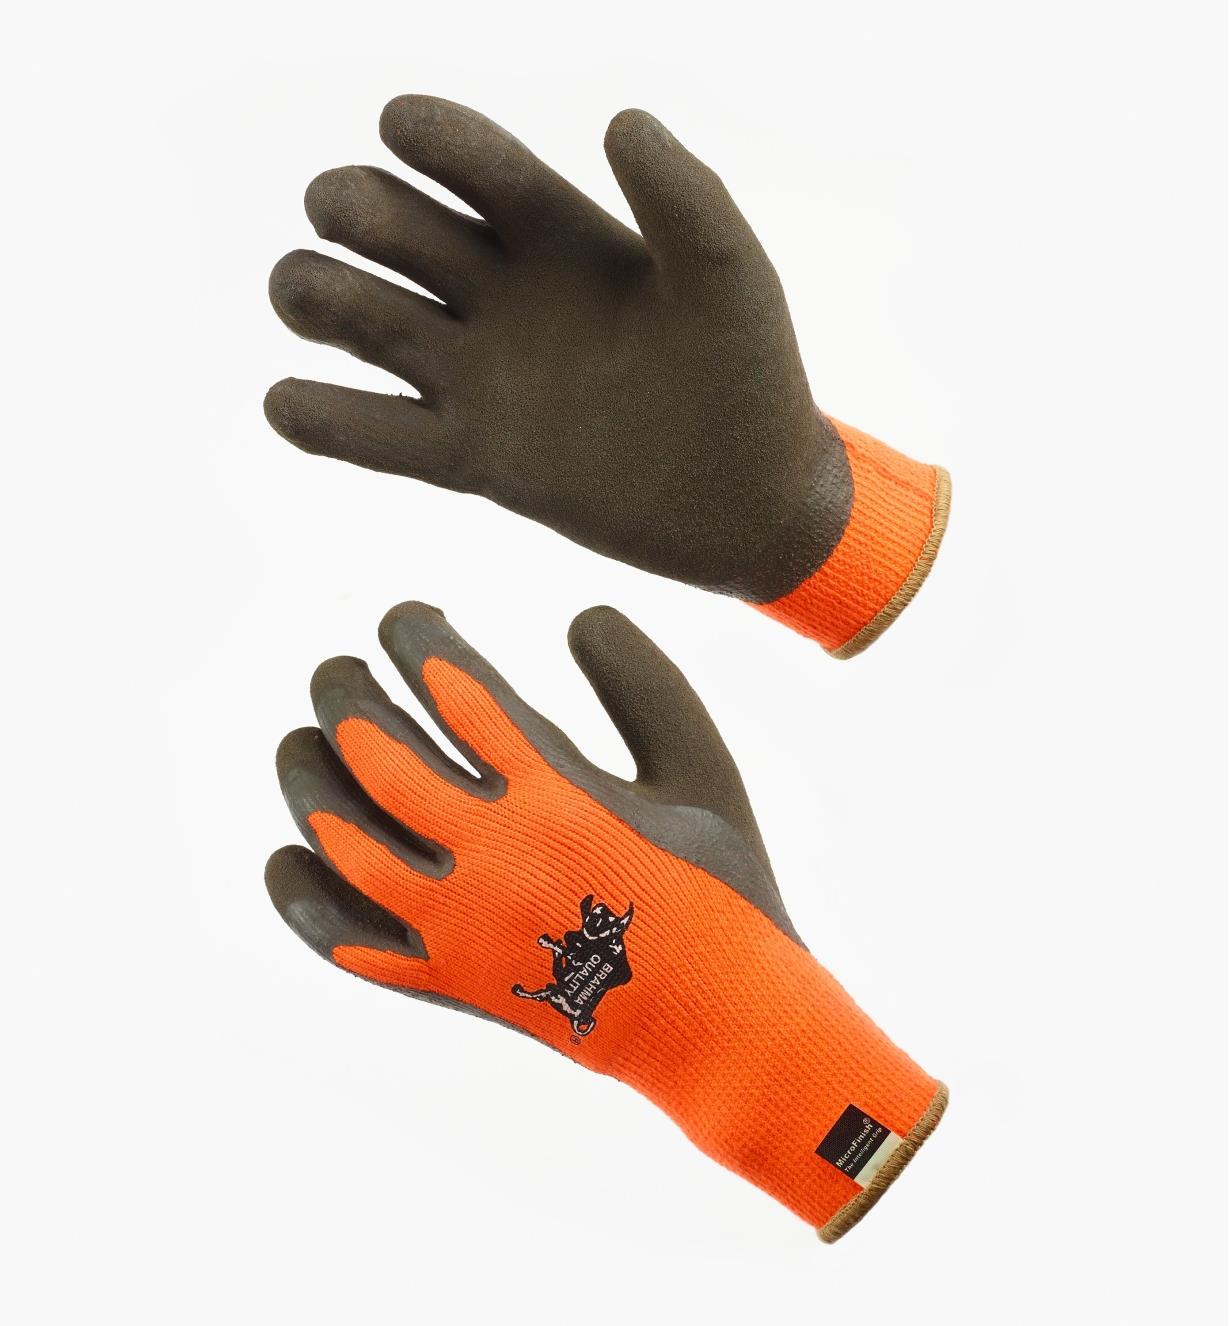 AH203 - Thermal Gripper Gloves, L (size 9)